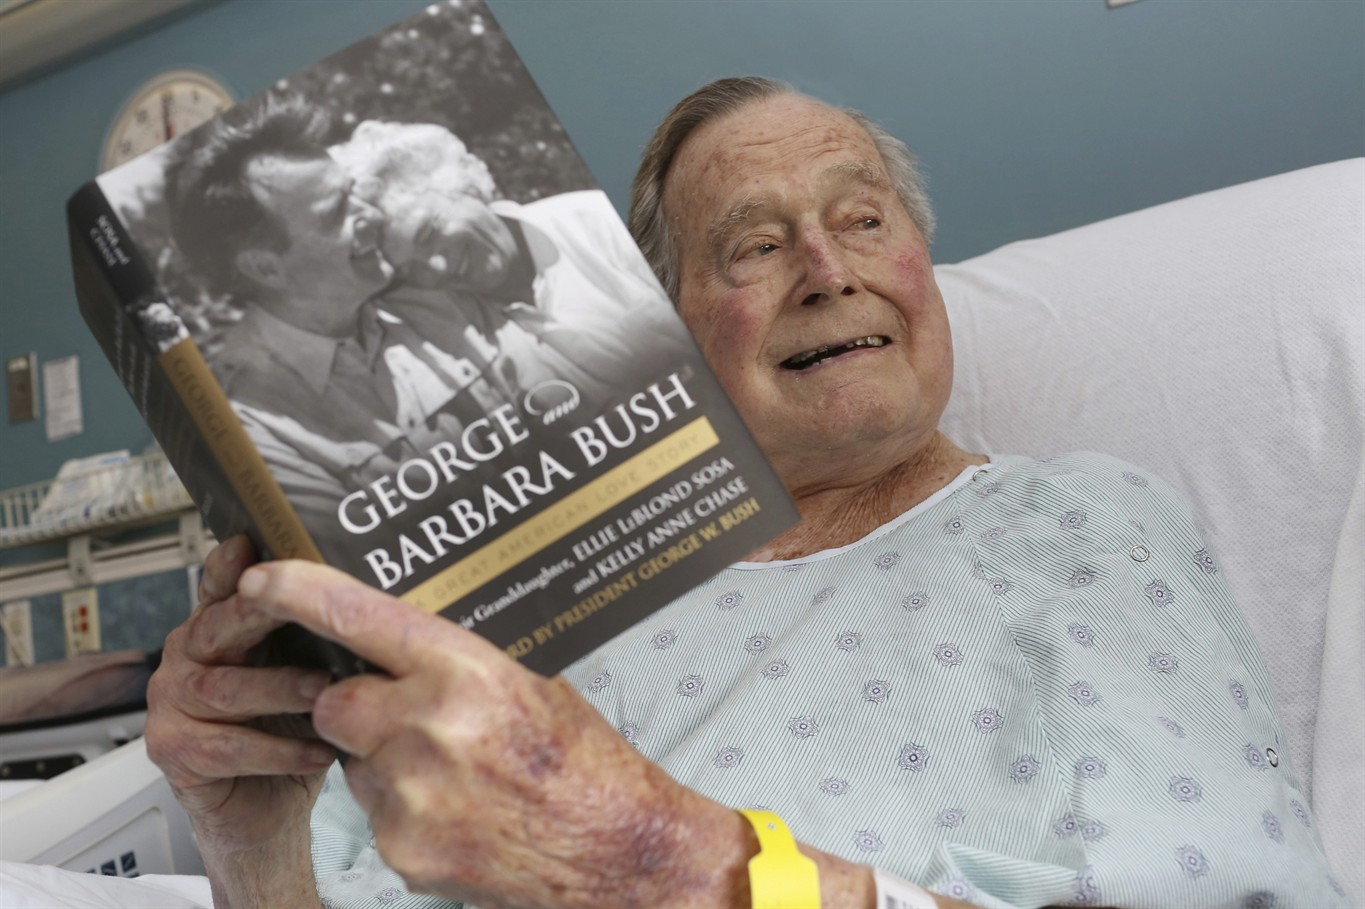 George H.W. Bush breaks a record on his birthday